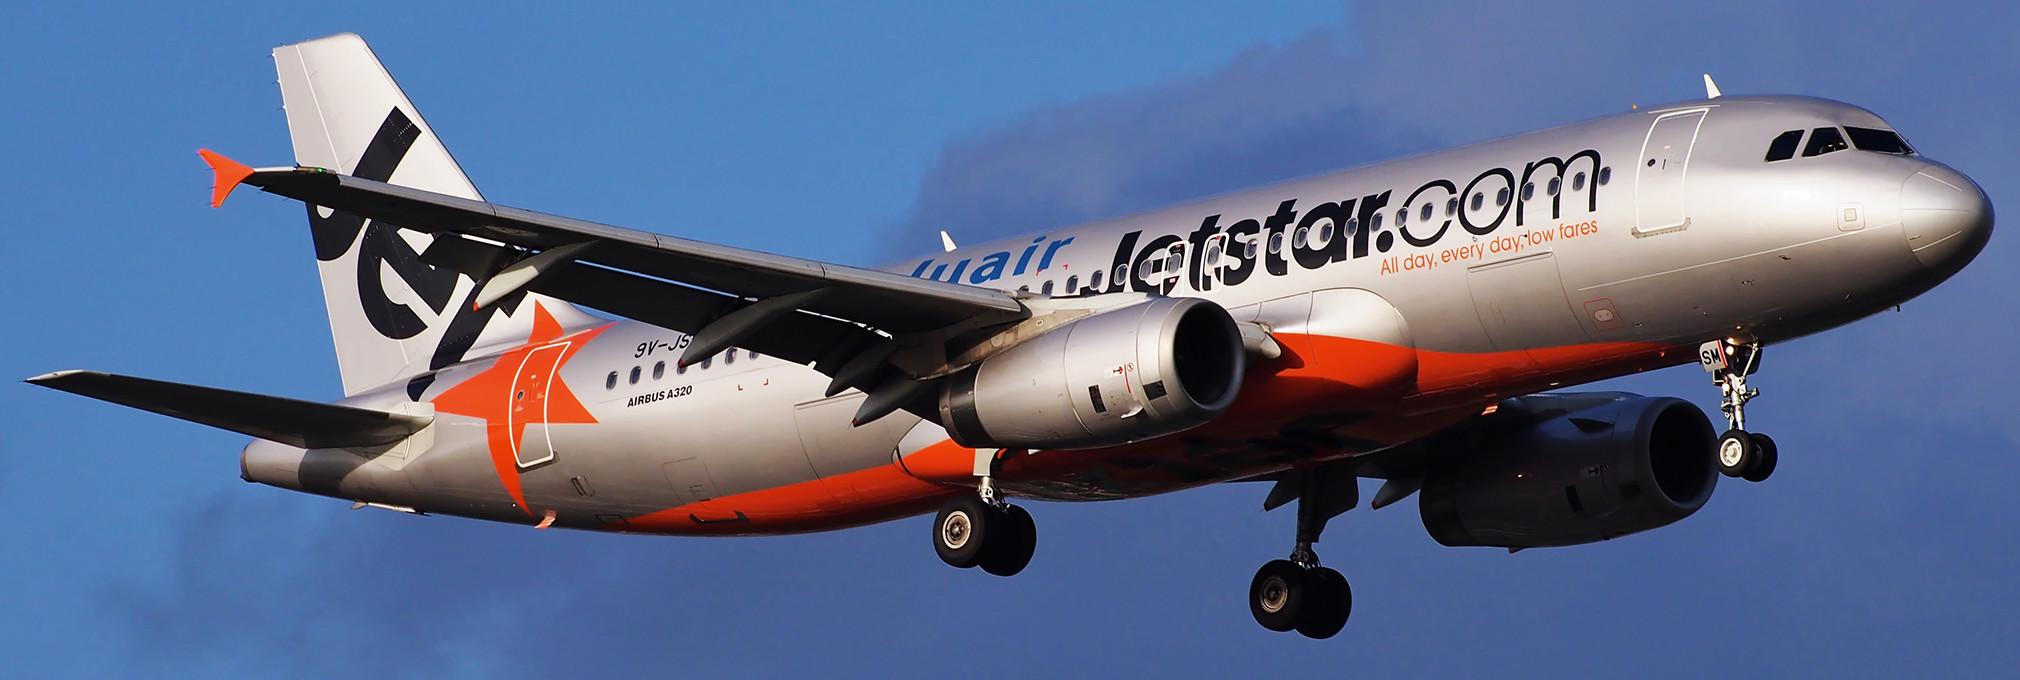 jetstar flights - photo #3